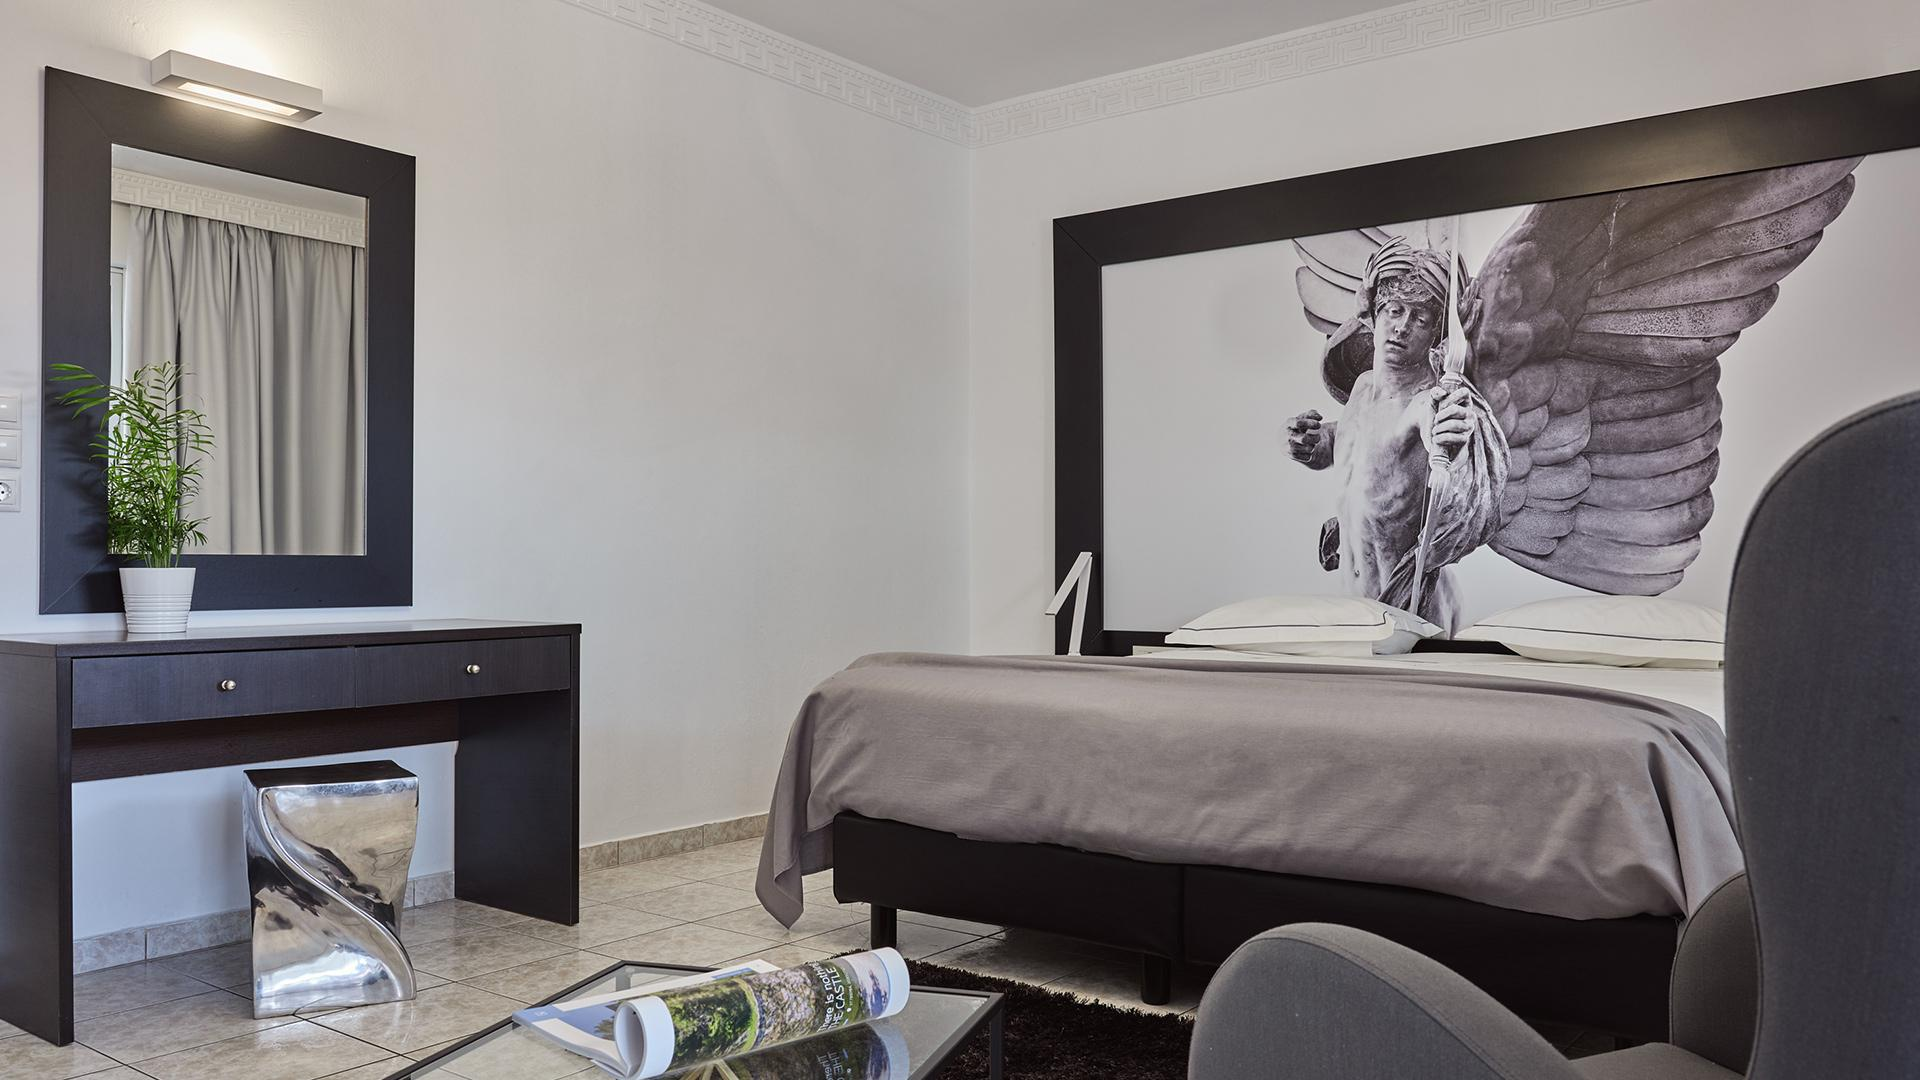 Premium Suite image 1 at Meandros Boutique & Spa Hotel  by null, Decentralized Administration of Peloponnese, Western Greece and the Ionian, Greece